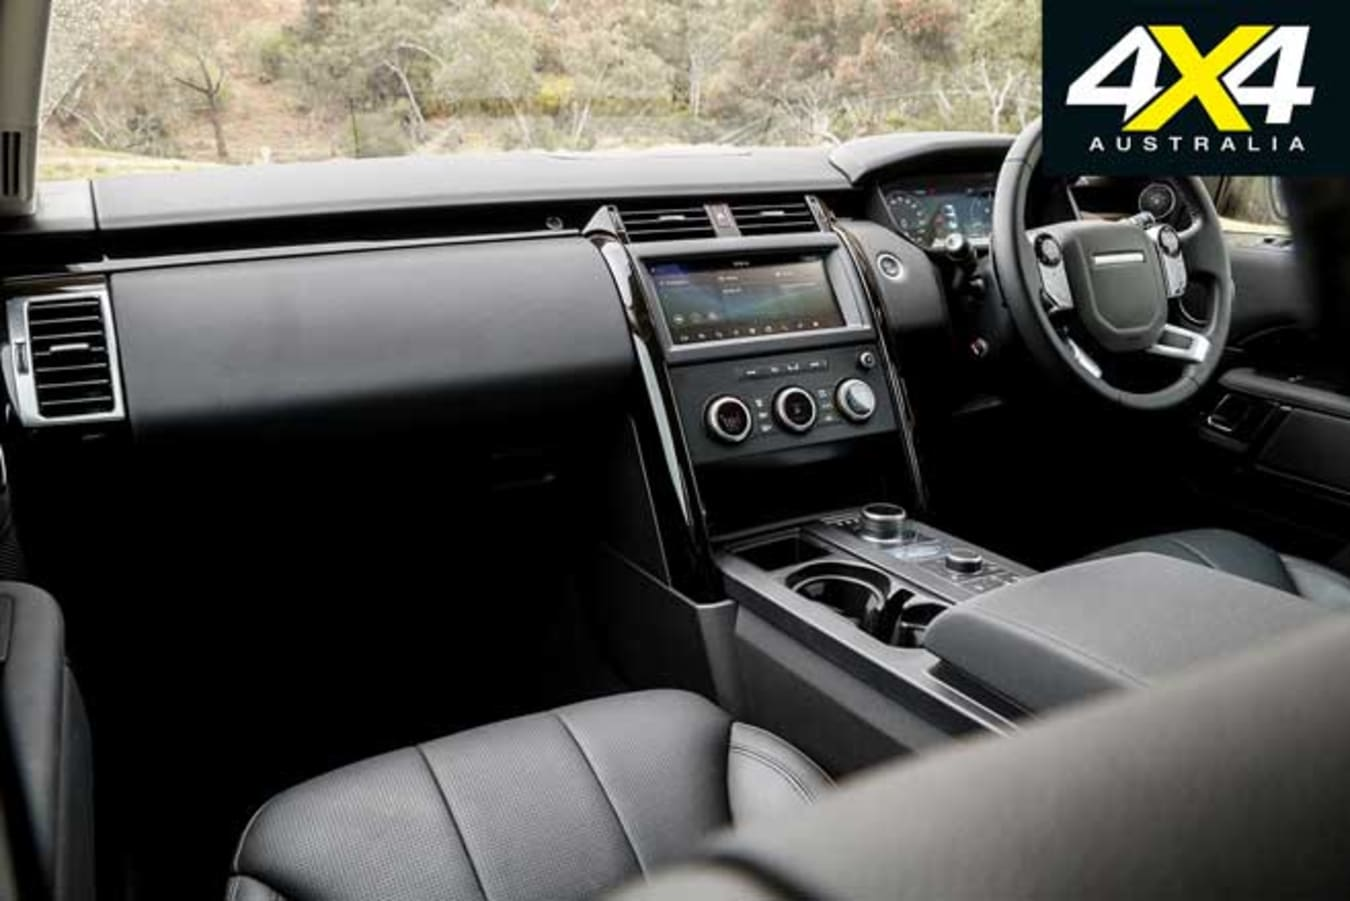 2020 4 X 4 Of The Year Land Rover Discovery Sd 6 Interior Jpg